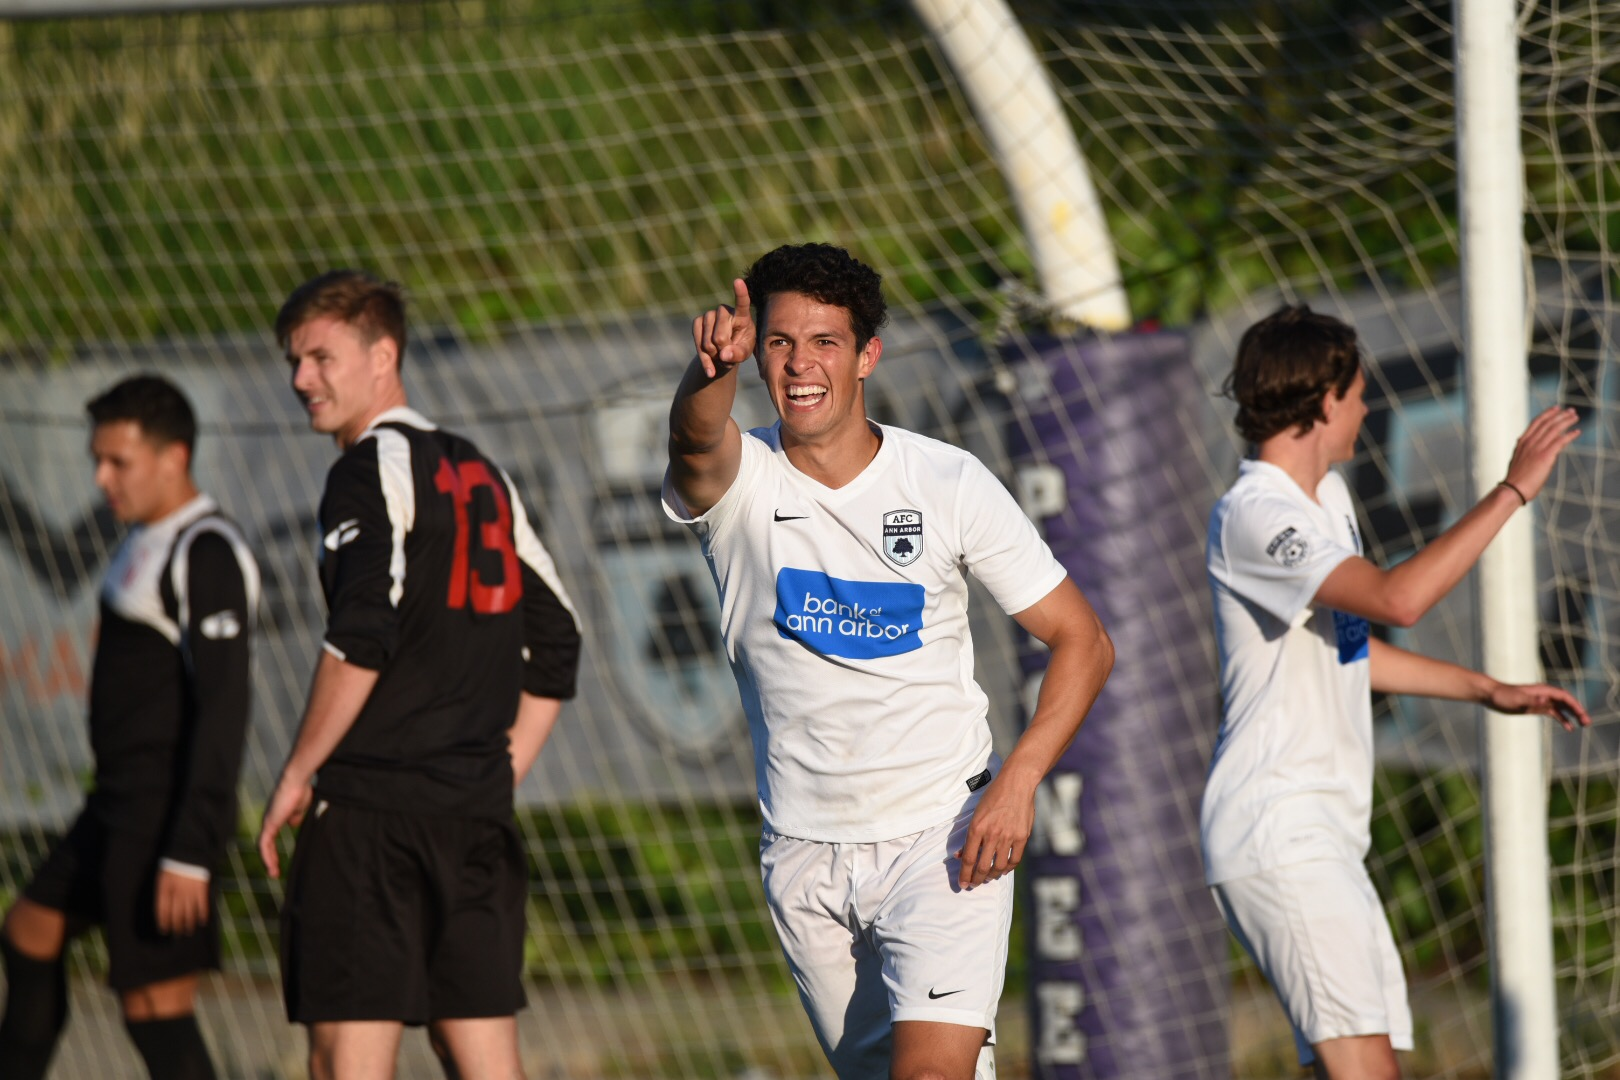 Yuri Farkas had two assists and a goal Saturday to earn him Audi Ann Arbor Man of the Match